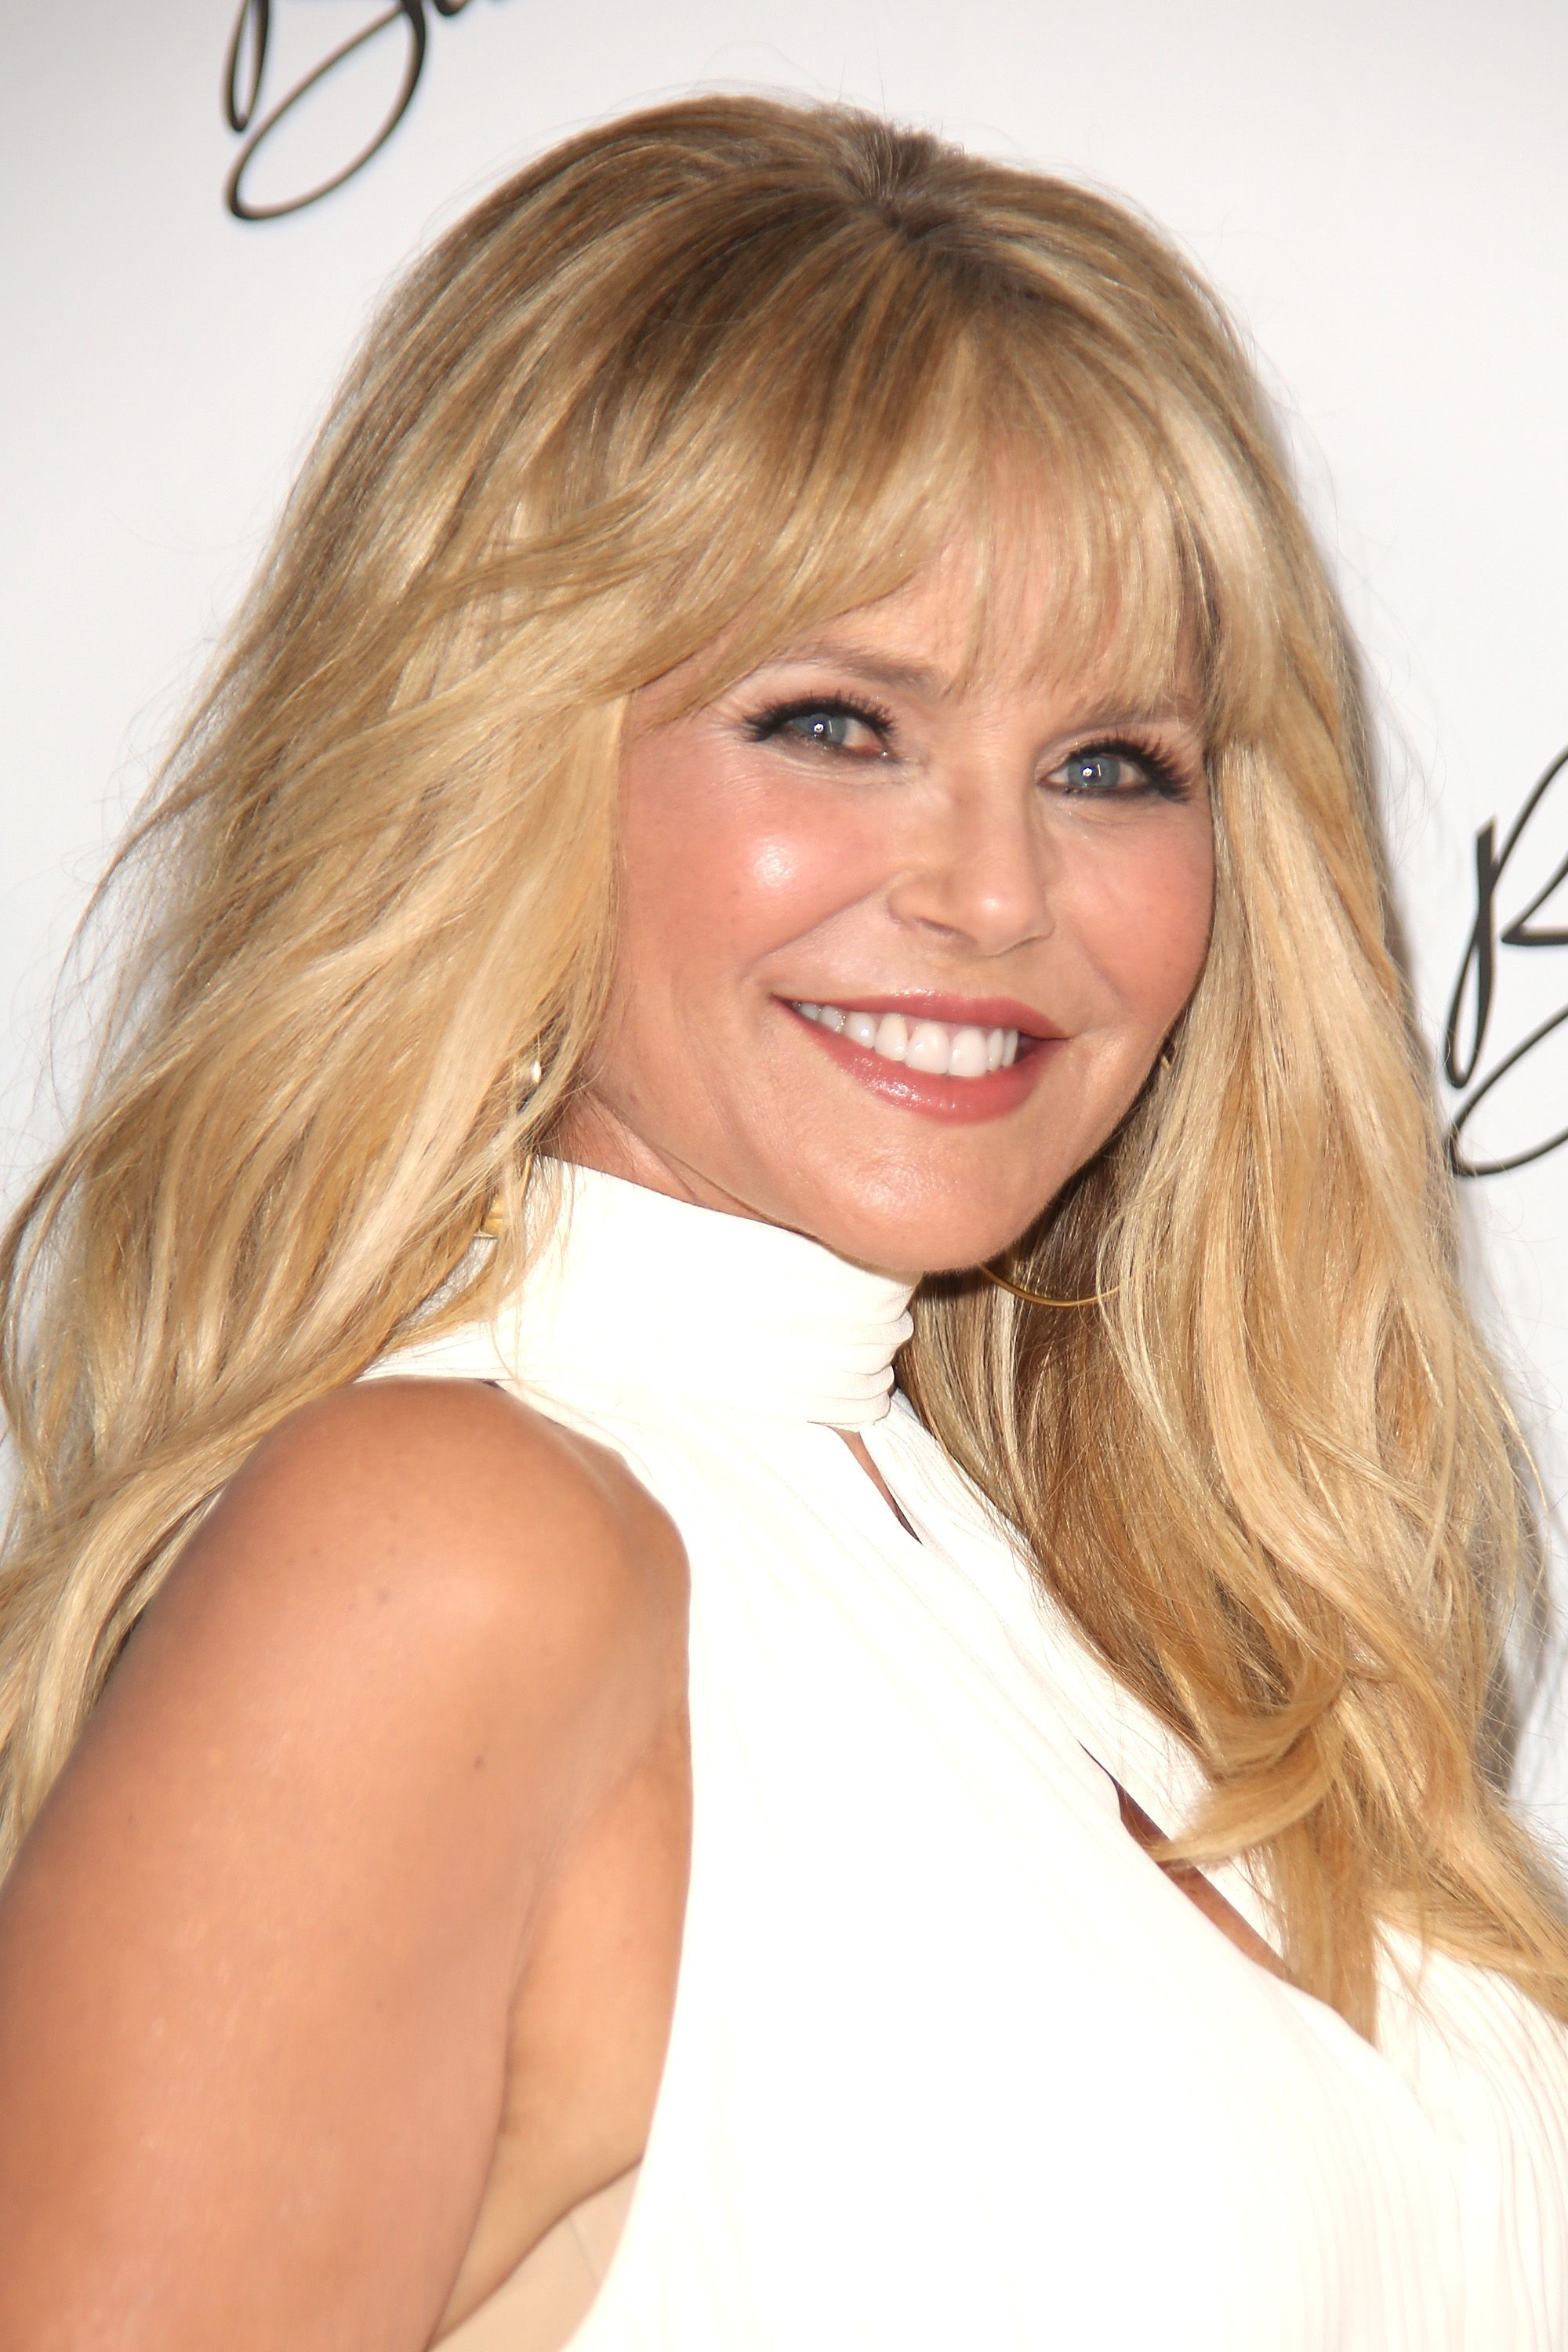 50 Best Hairstyles for Women Over 50 , Celebrity Haircuts